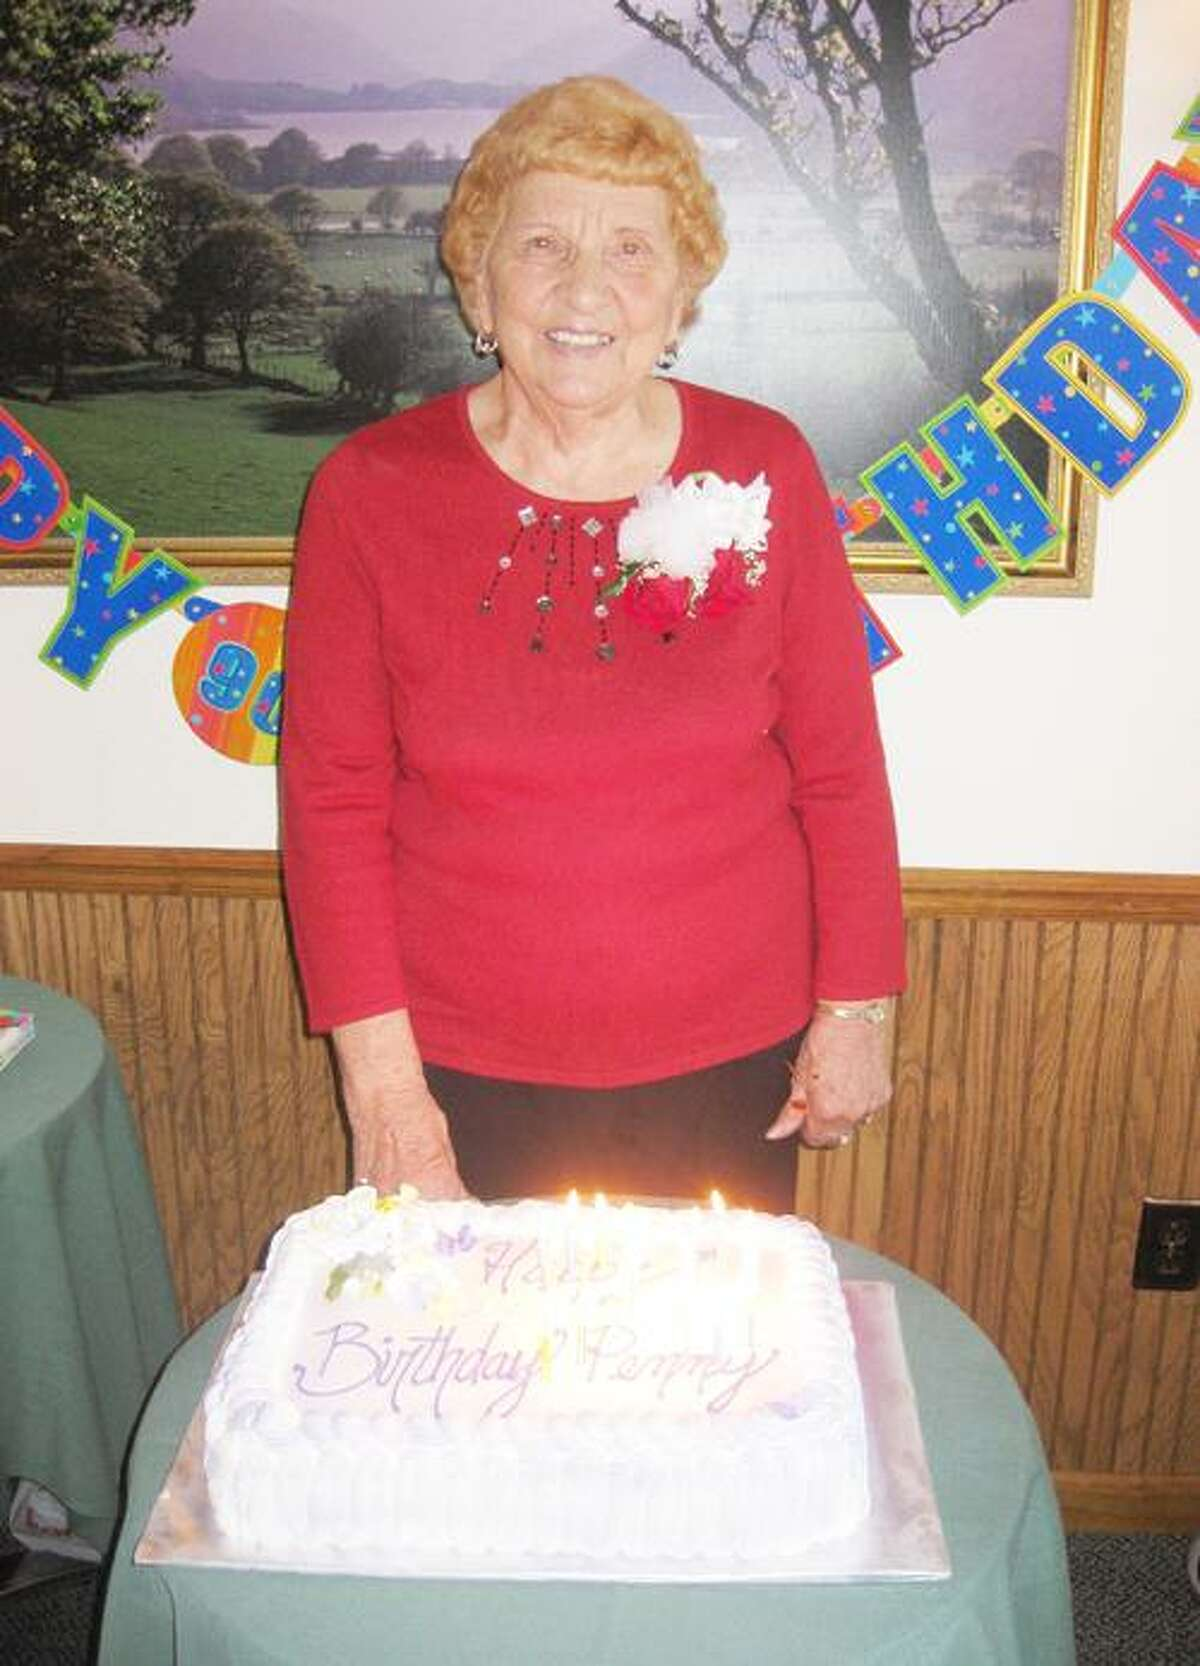 SUBMITTED PHOTO Penny Strain celebrates her 90th birthday.